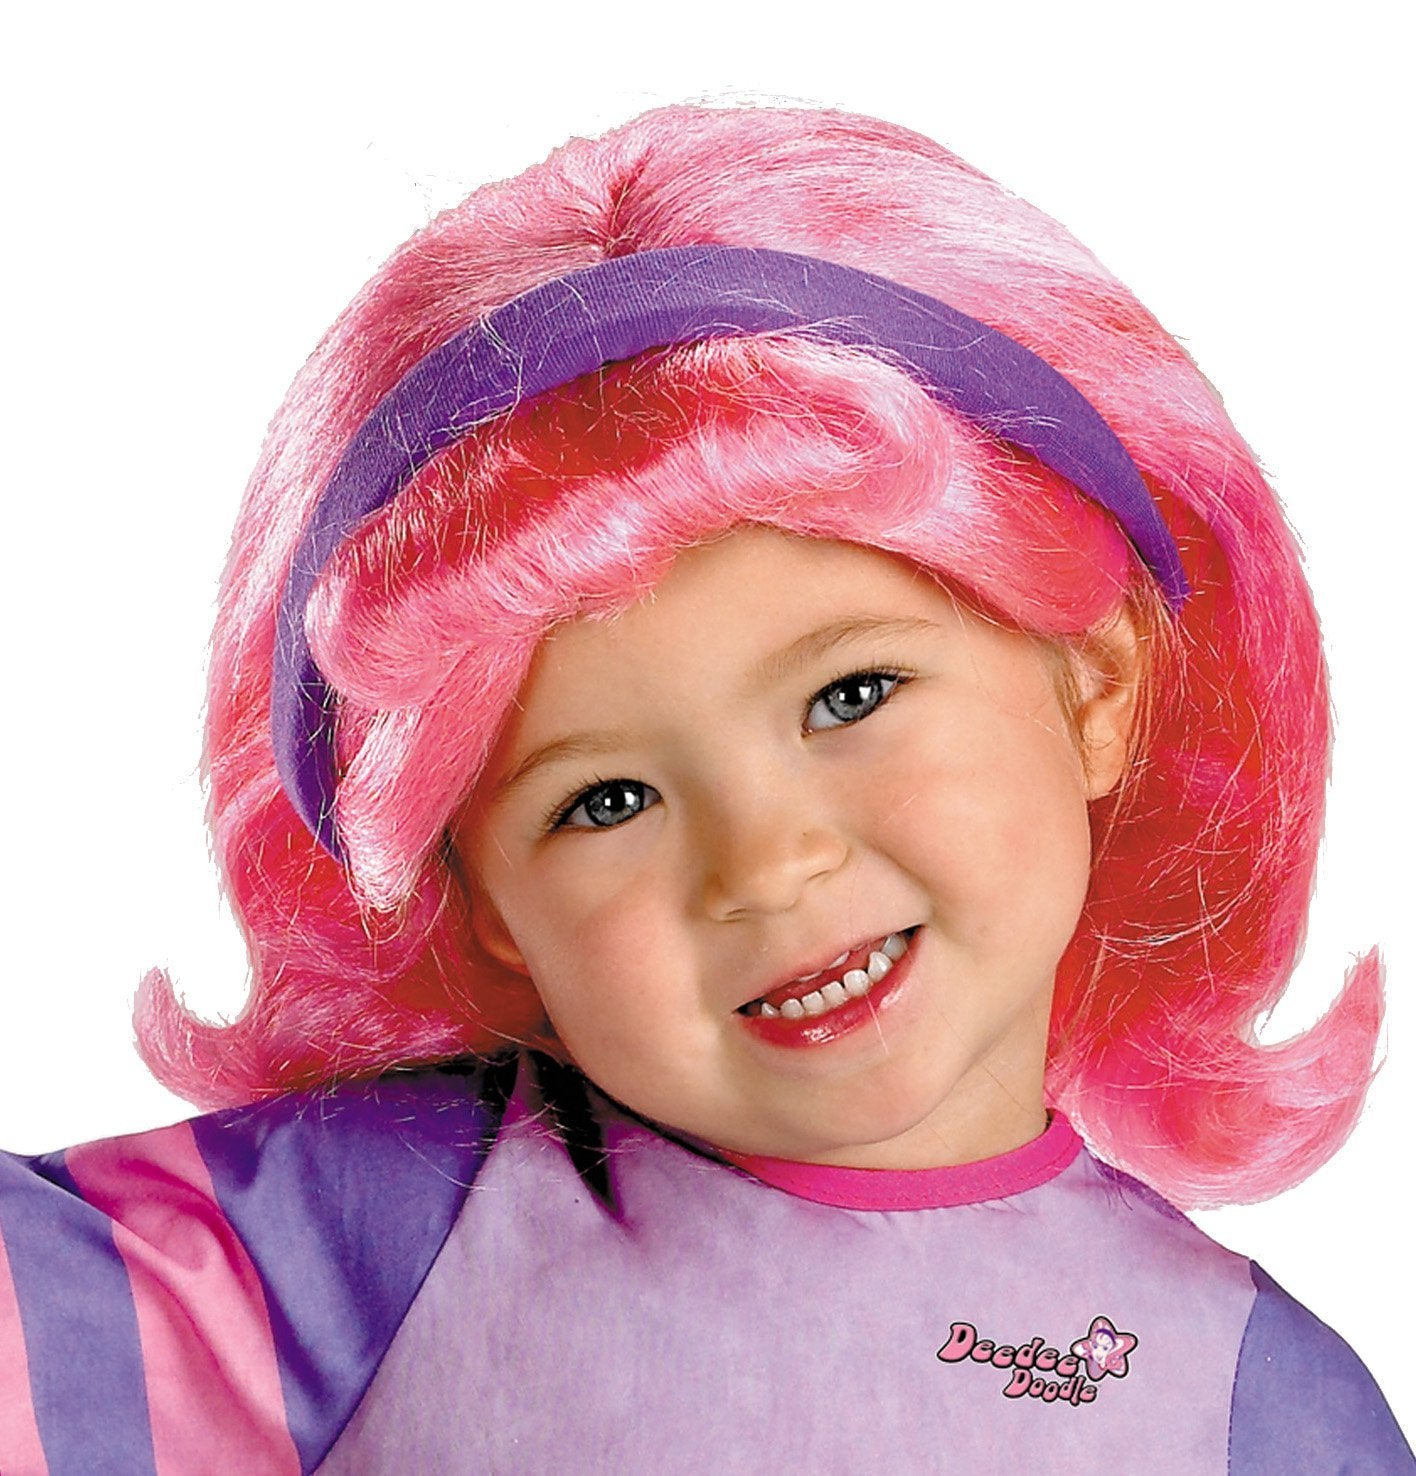 Disney Doodlebops Deedee Childs Wig - Baby World Inc